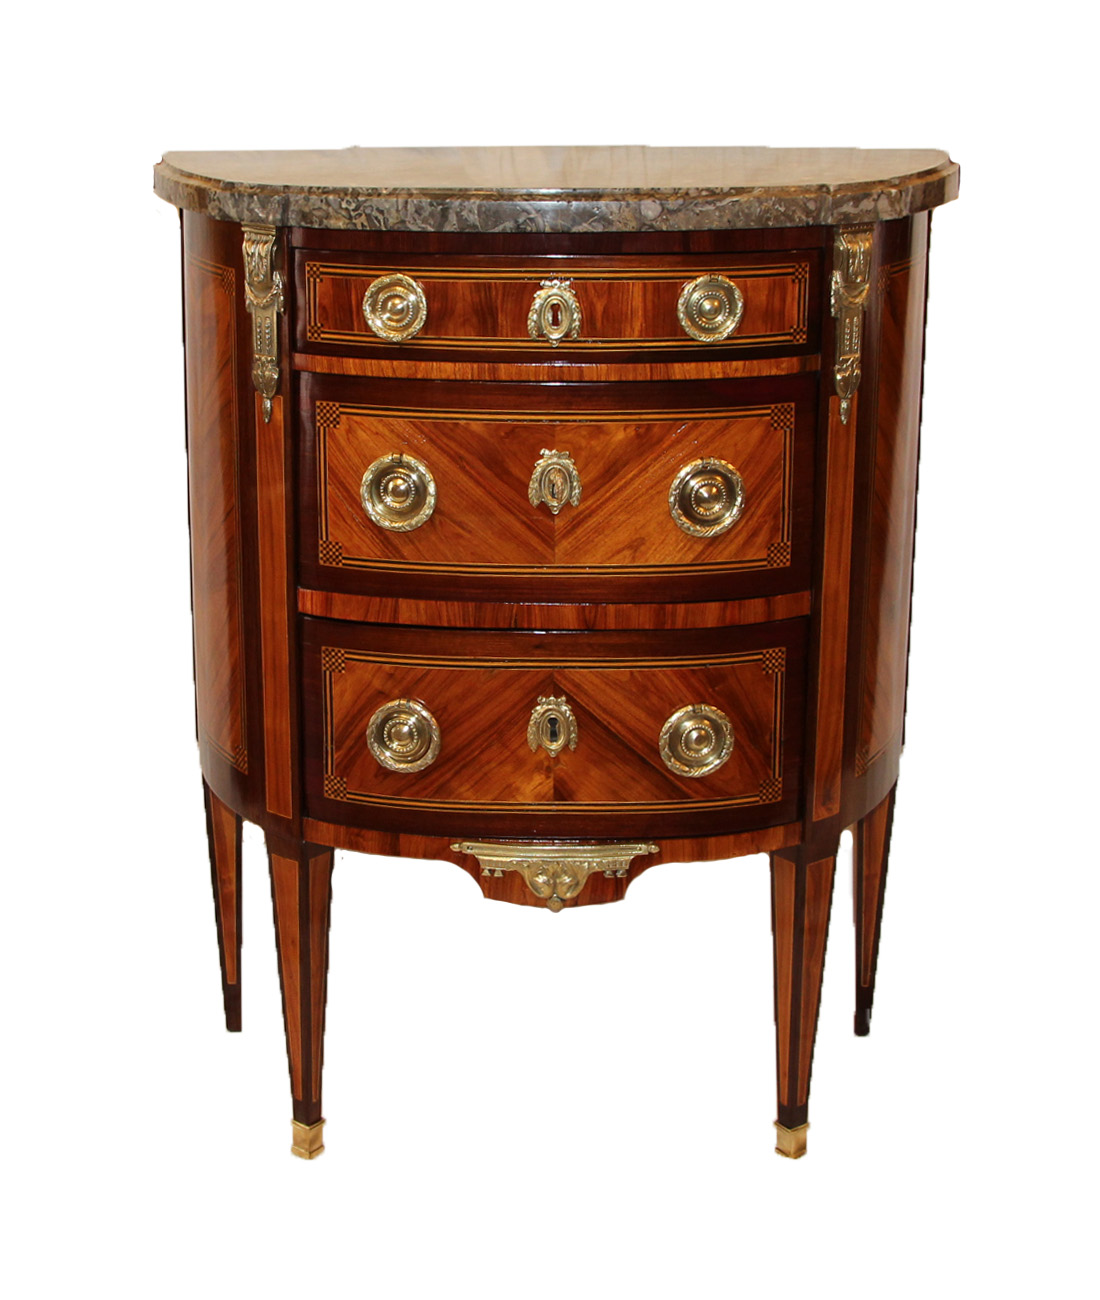 Commode demi lune d epoque Louis XVI